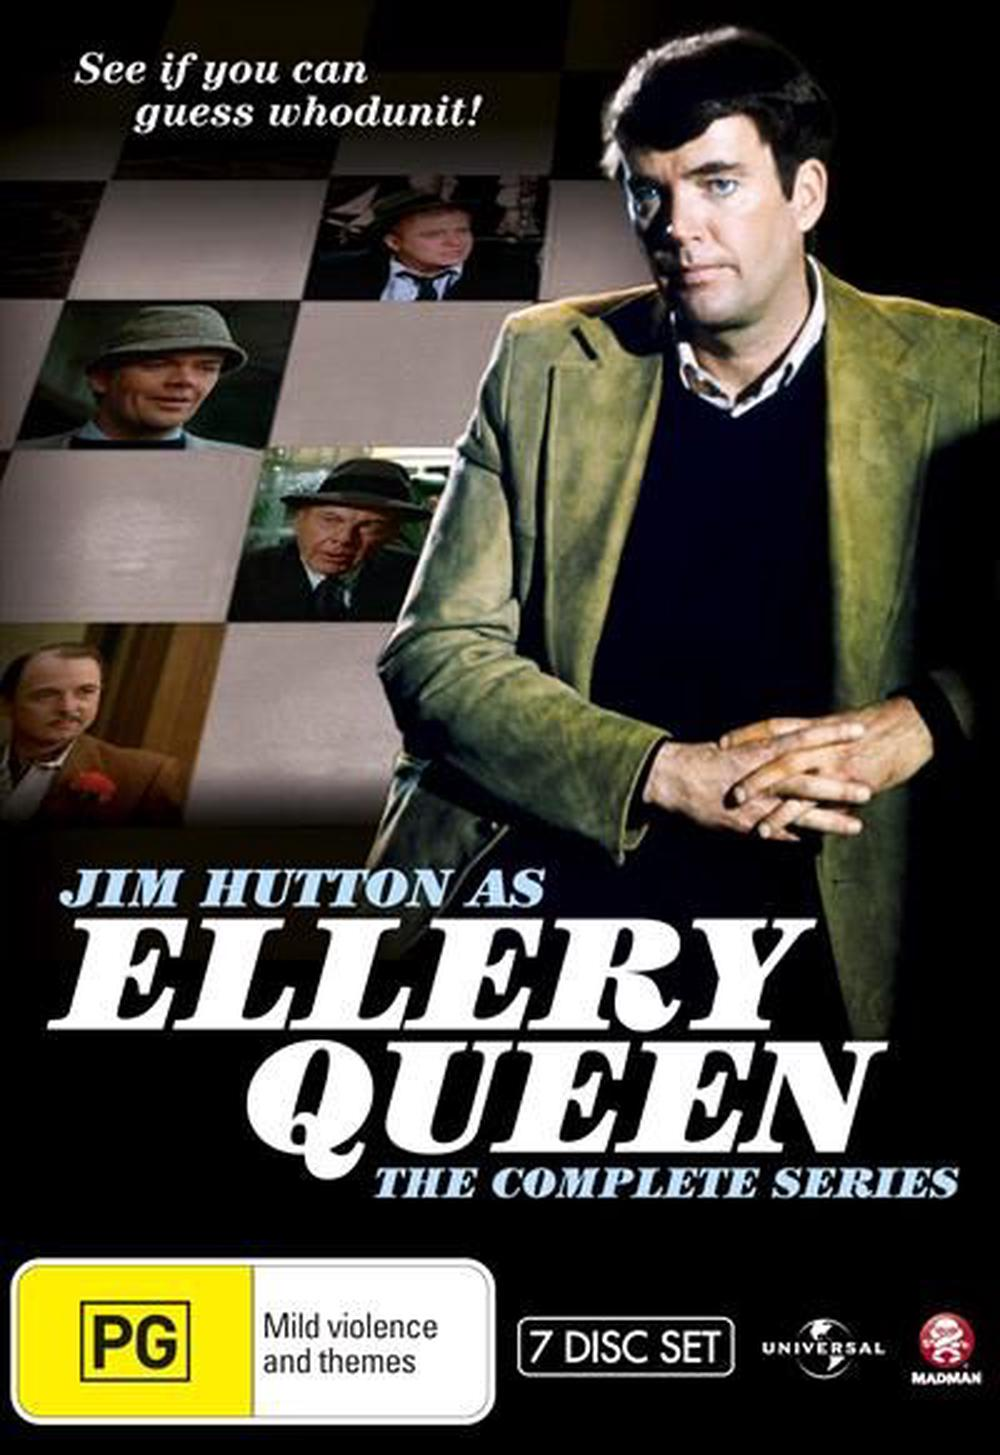 Ellery Queen: The Complete Series